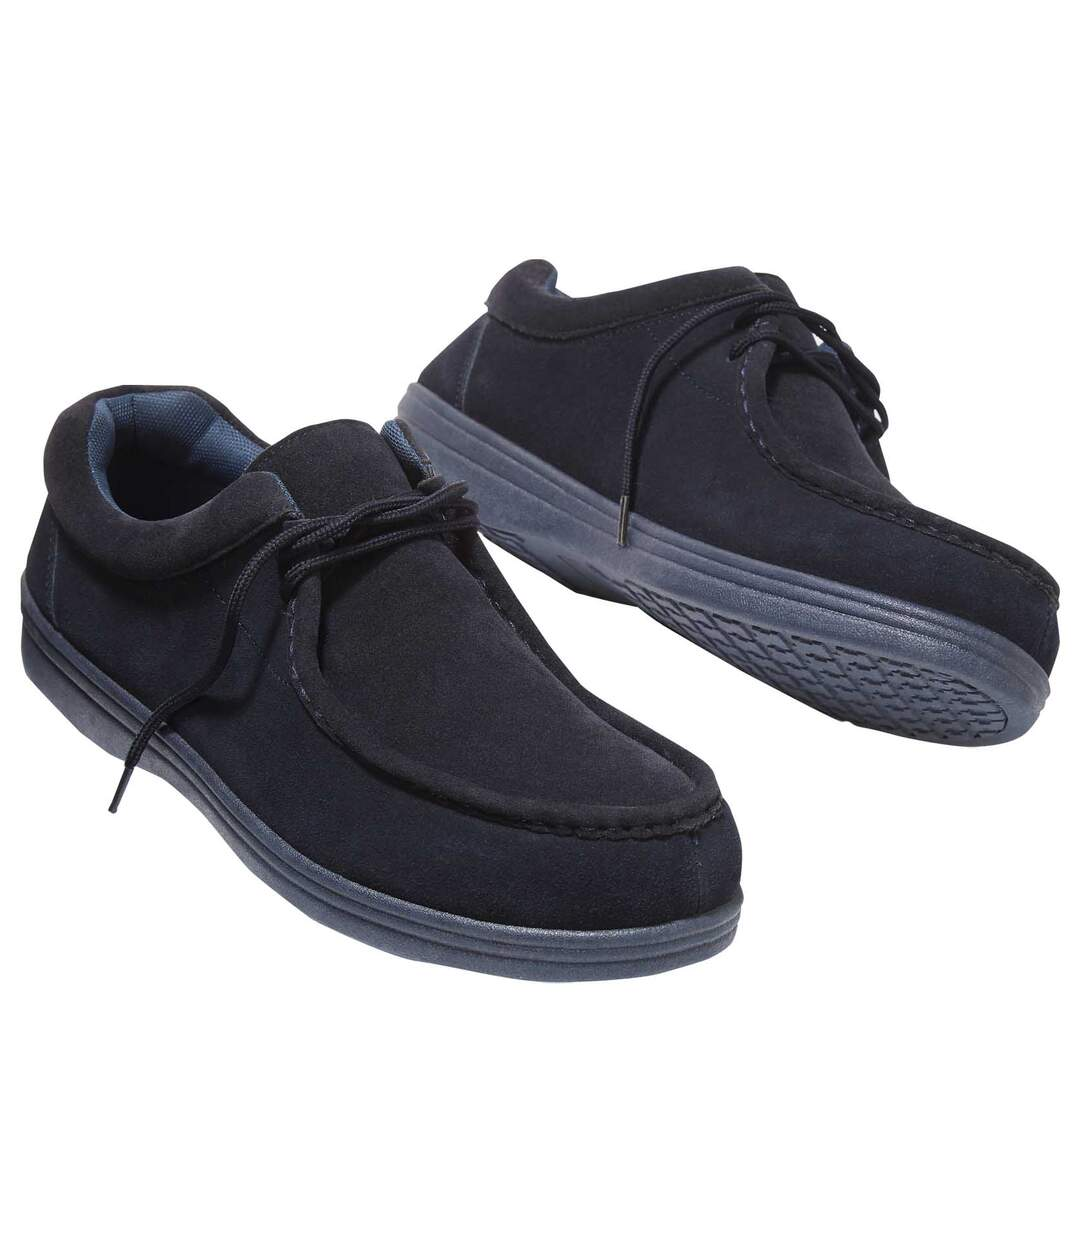 Men's Navy Leather Outdoor Shoes